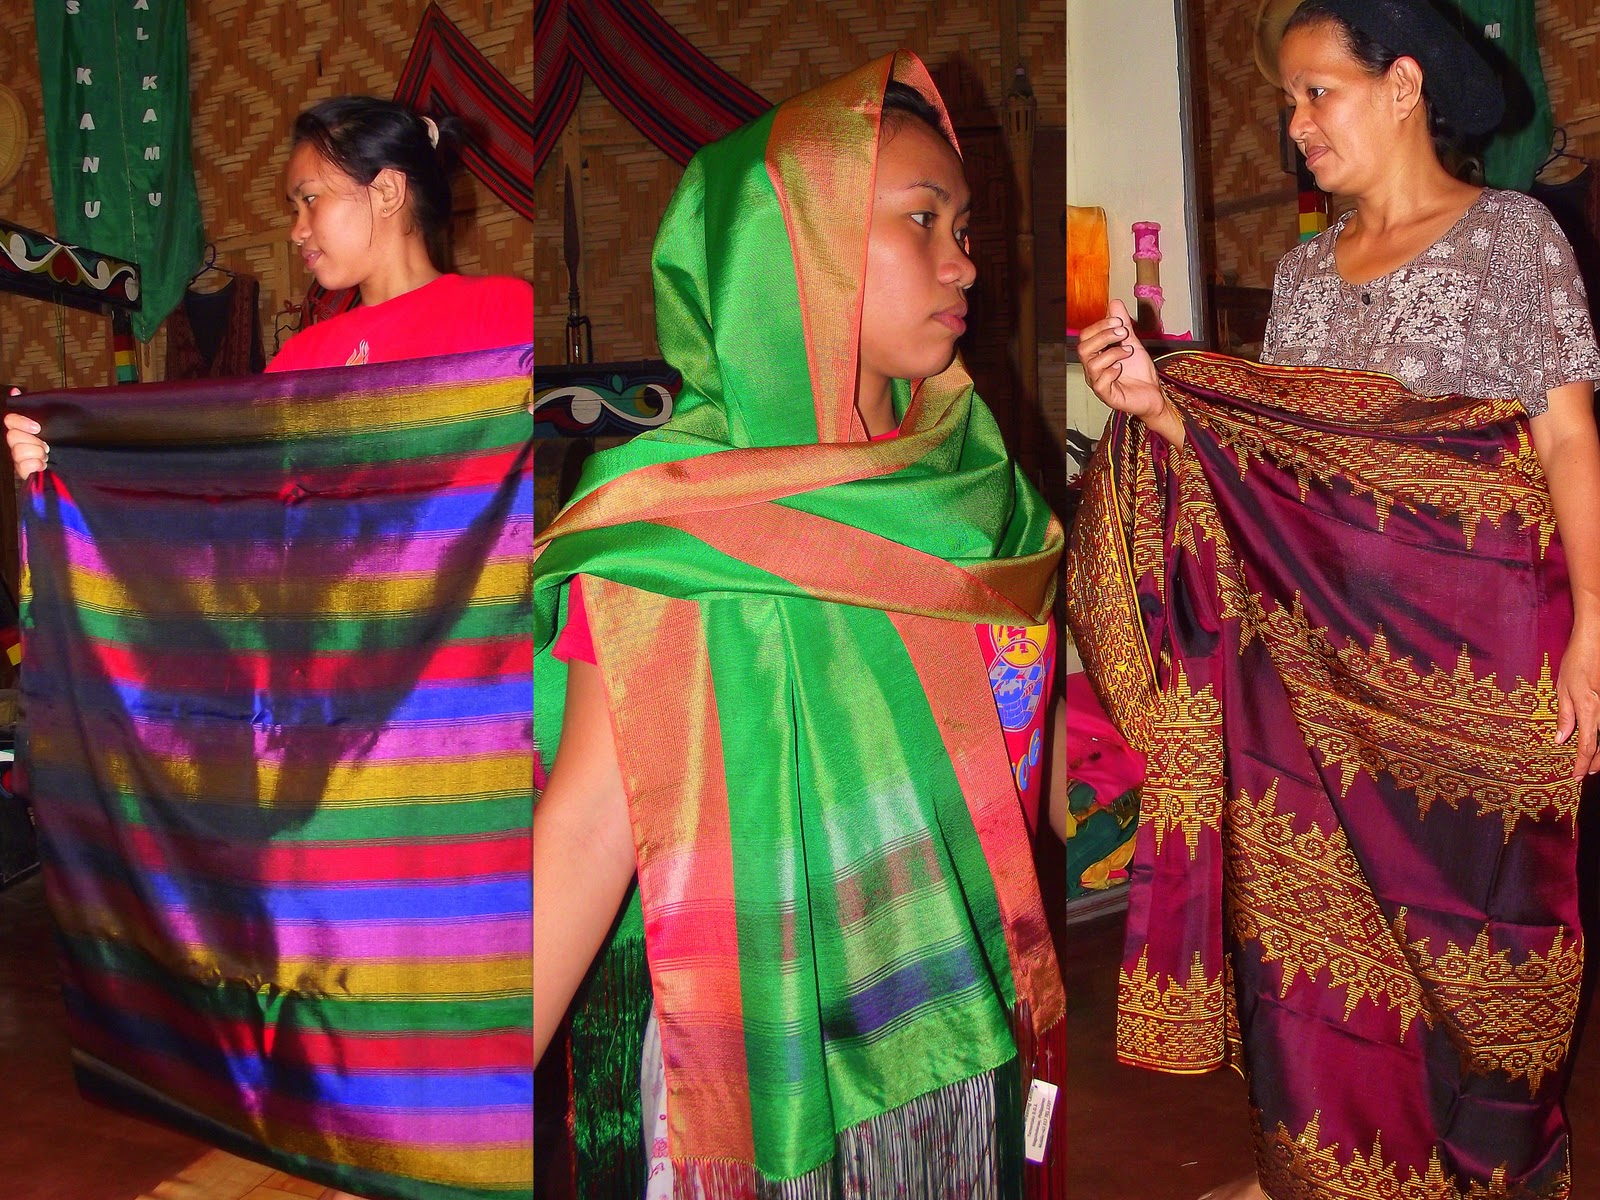 LaRuY LaRuY SiNtA: iNauL tHe pRiDe oF cOtAbAtO